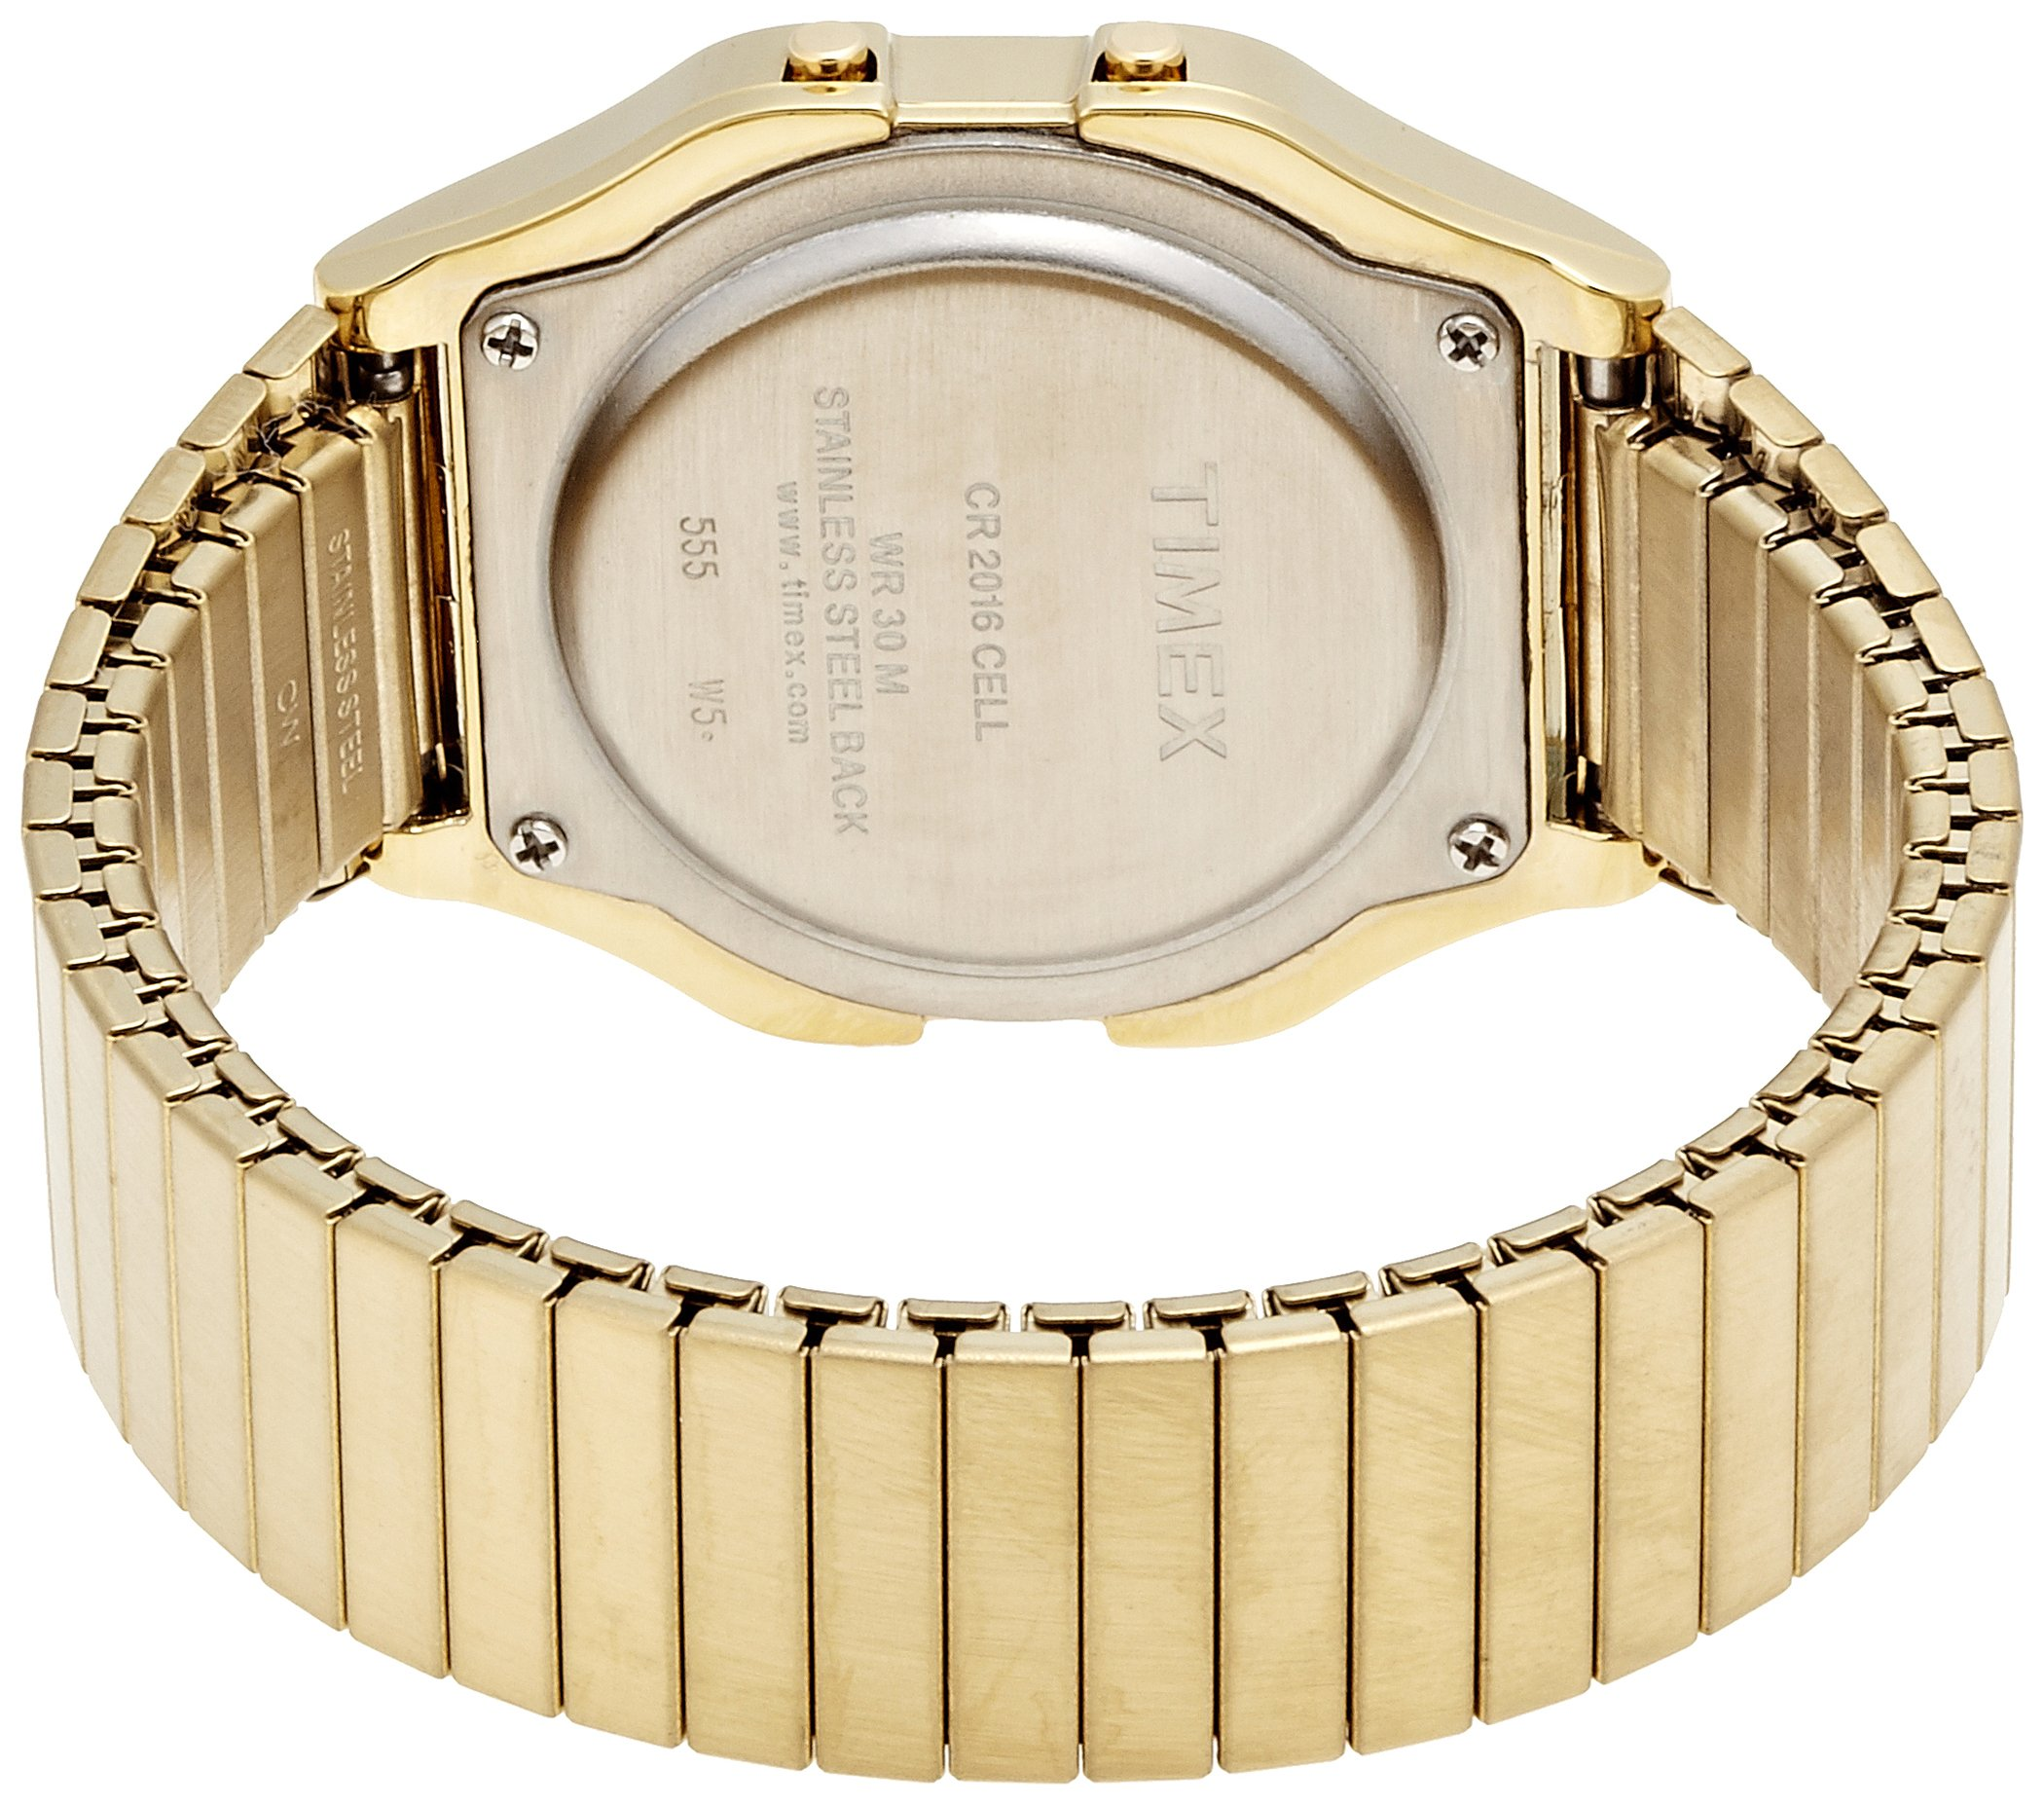 47e878bc4 Timex Men's T78677 Classic Digital Gold-Tone Stainless Steel Expansion Band  Watch - T786779J < Wrist Watches < Clothing, Shoes & Jewelry - tibs